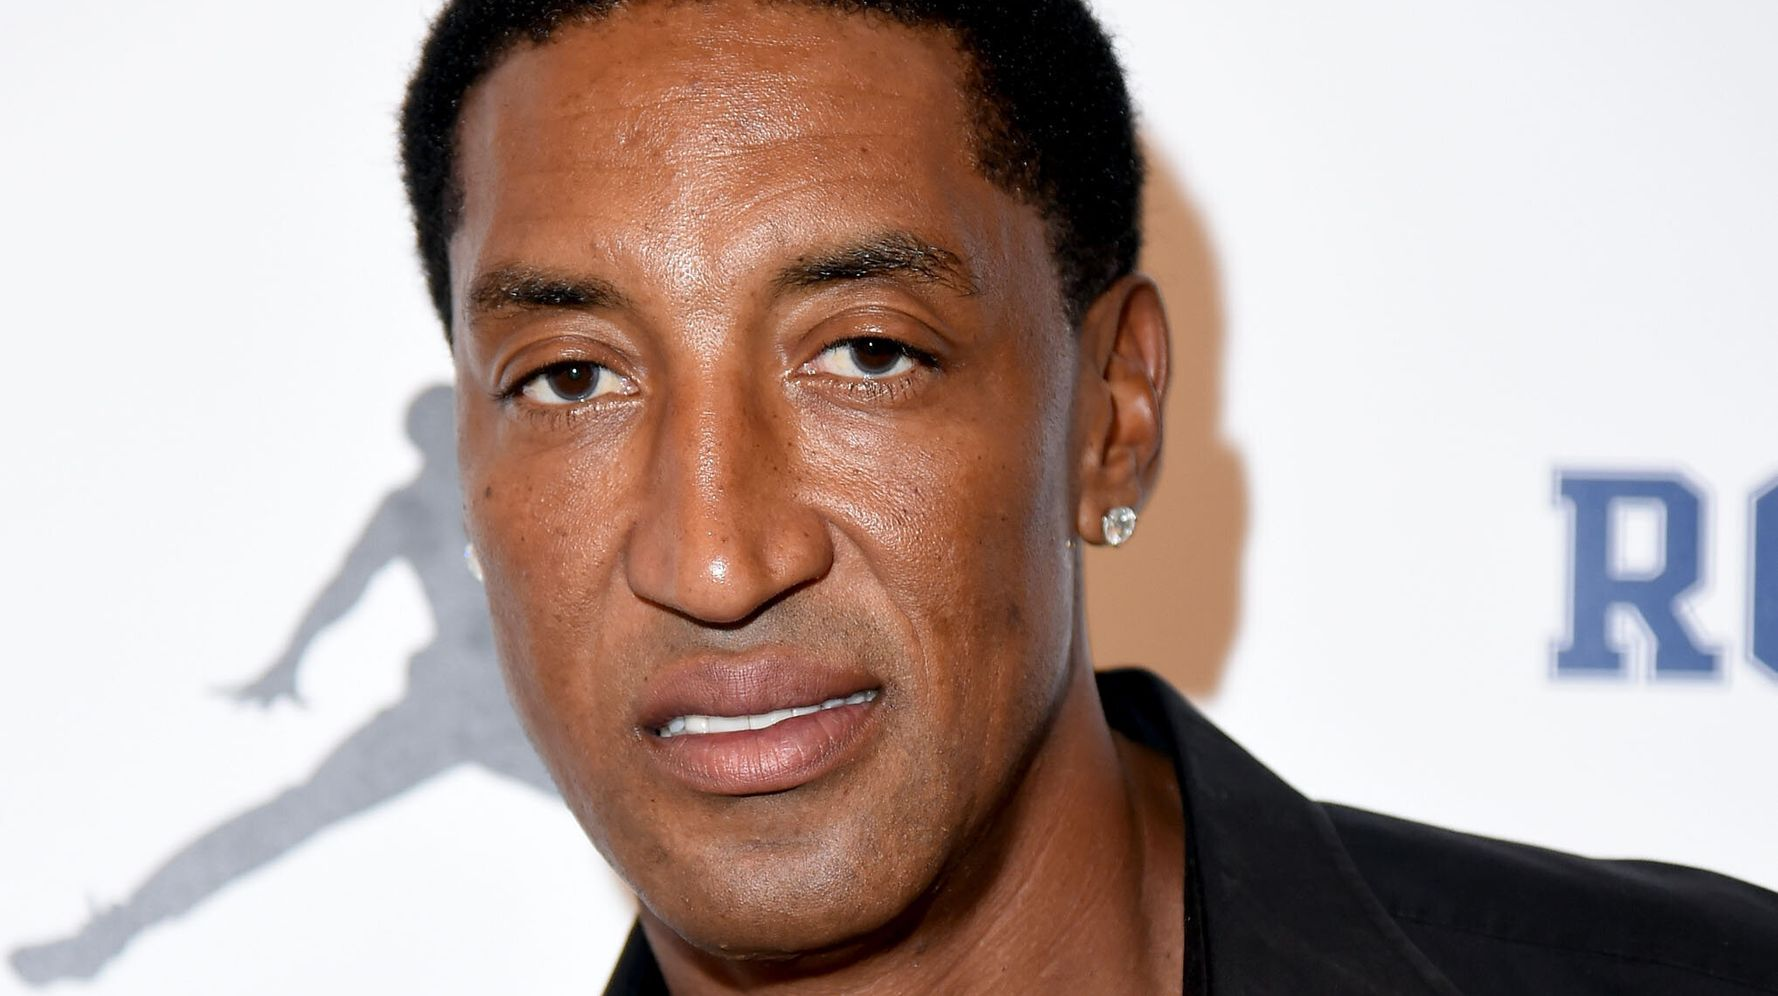 Scottie Pippen Mourns Loss Of His Son Antron: 'Beautiful Soul Gone Way Too Soon'